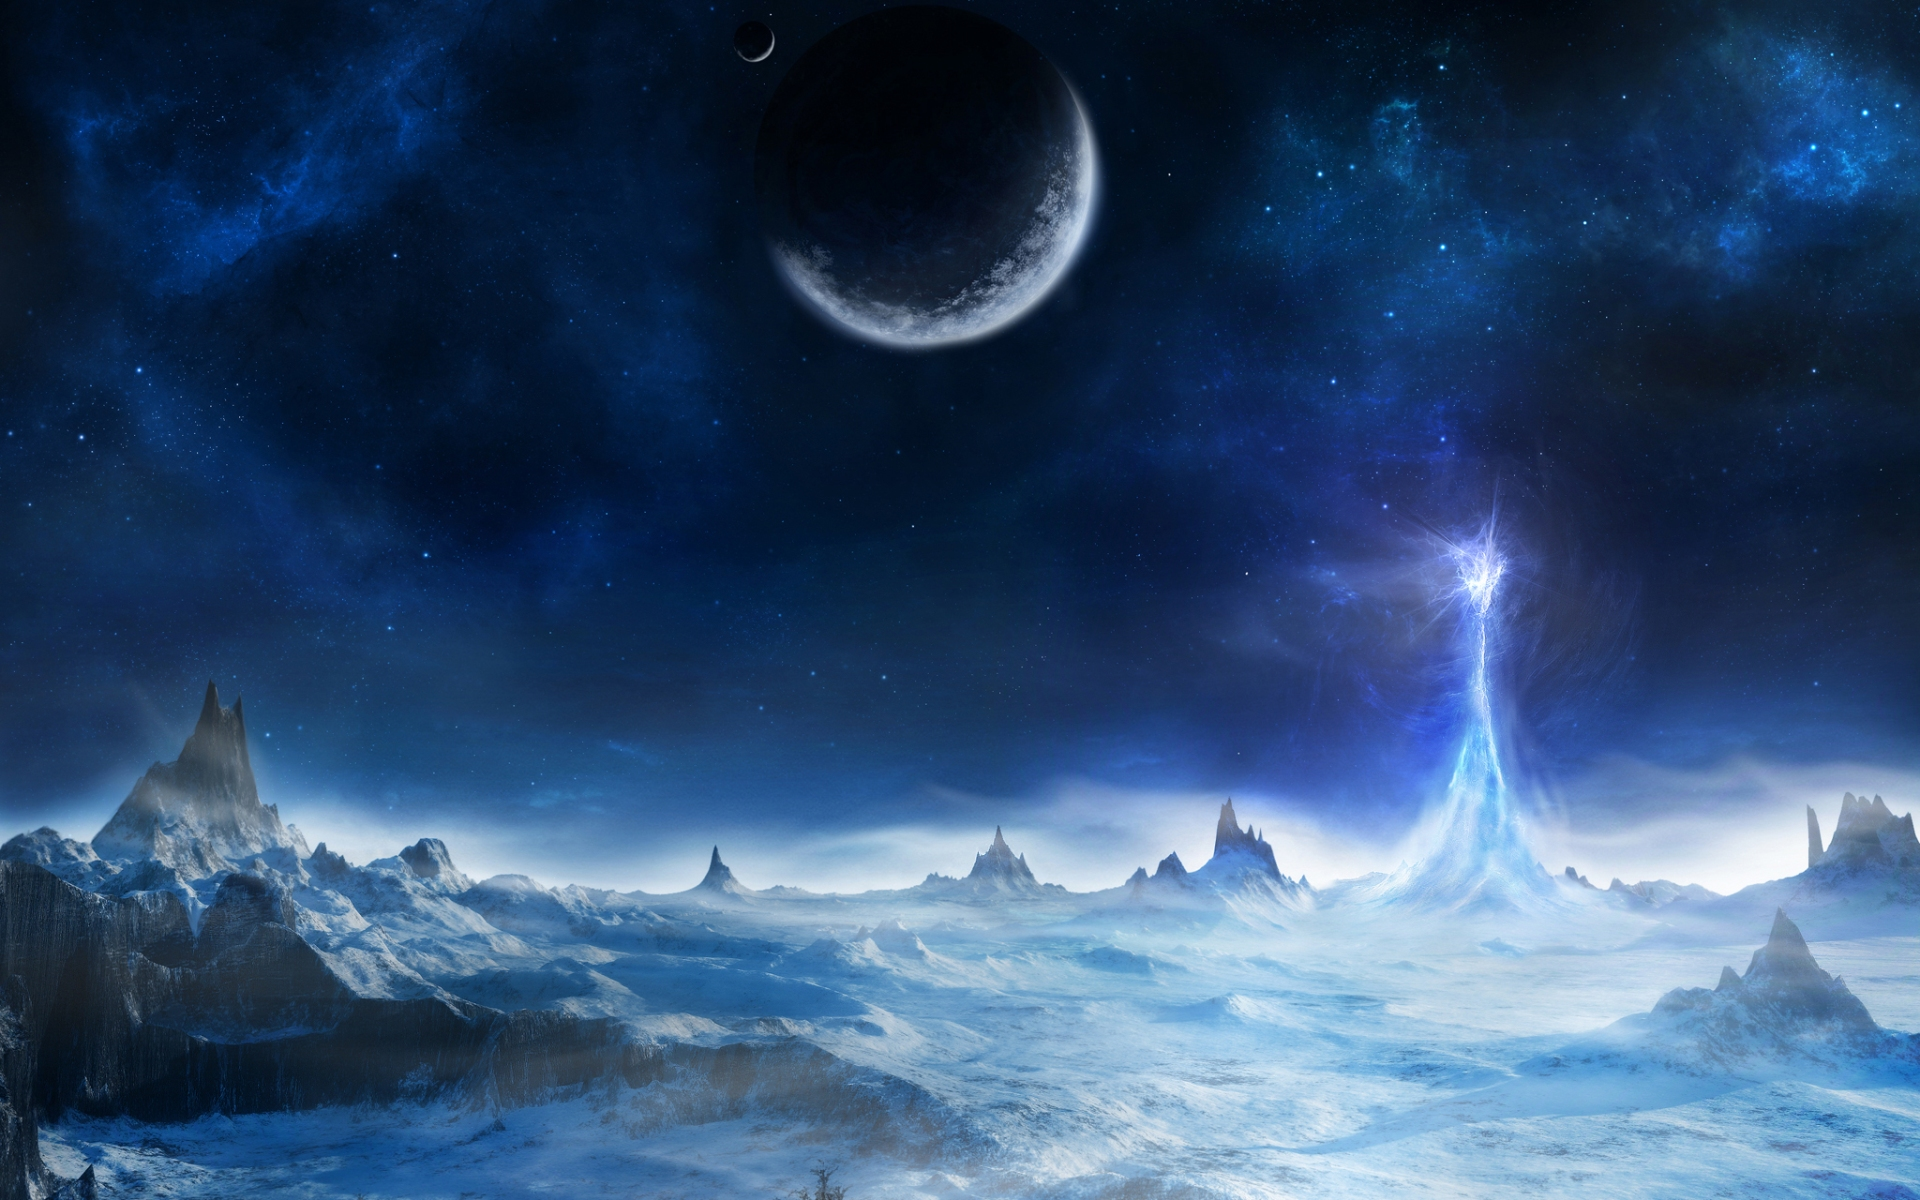 Outer Space Wallpaper 1920x1200 Outer Space Planets Artwork 1920x1200